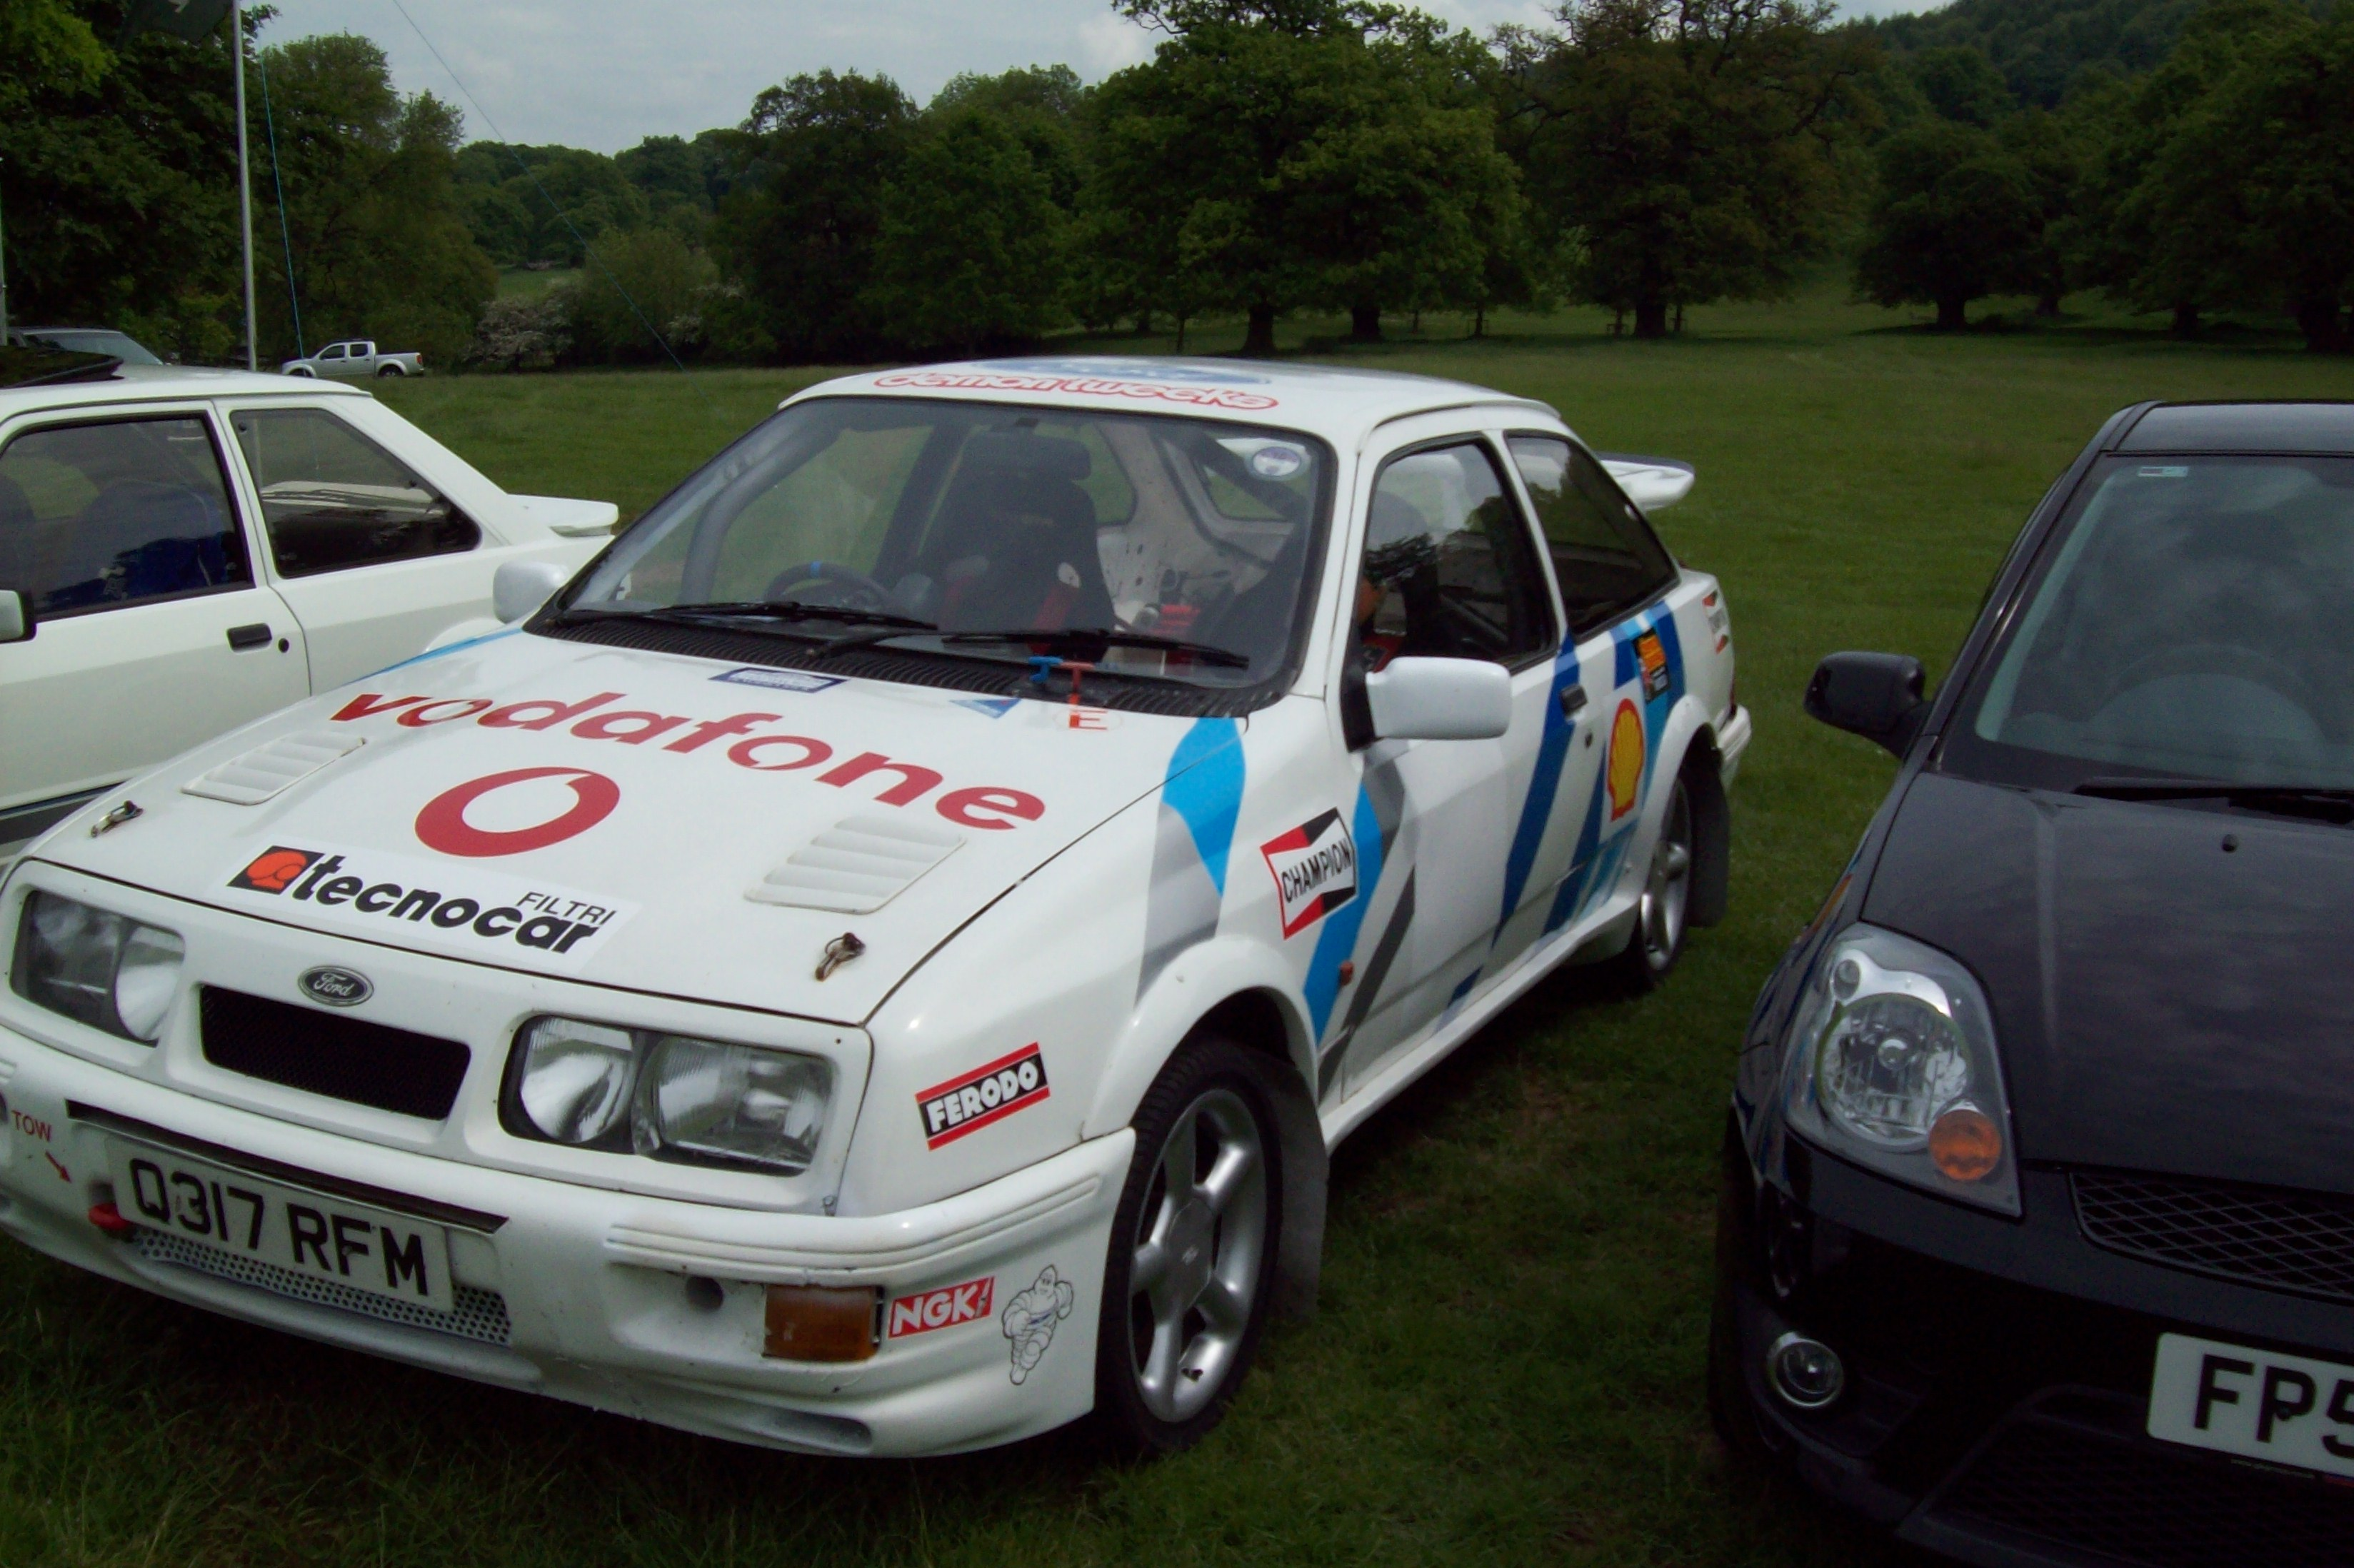 File:Ford Sierra RS Cosworth rally car.JPG - Wikimedia Commons